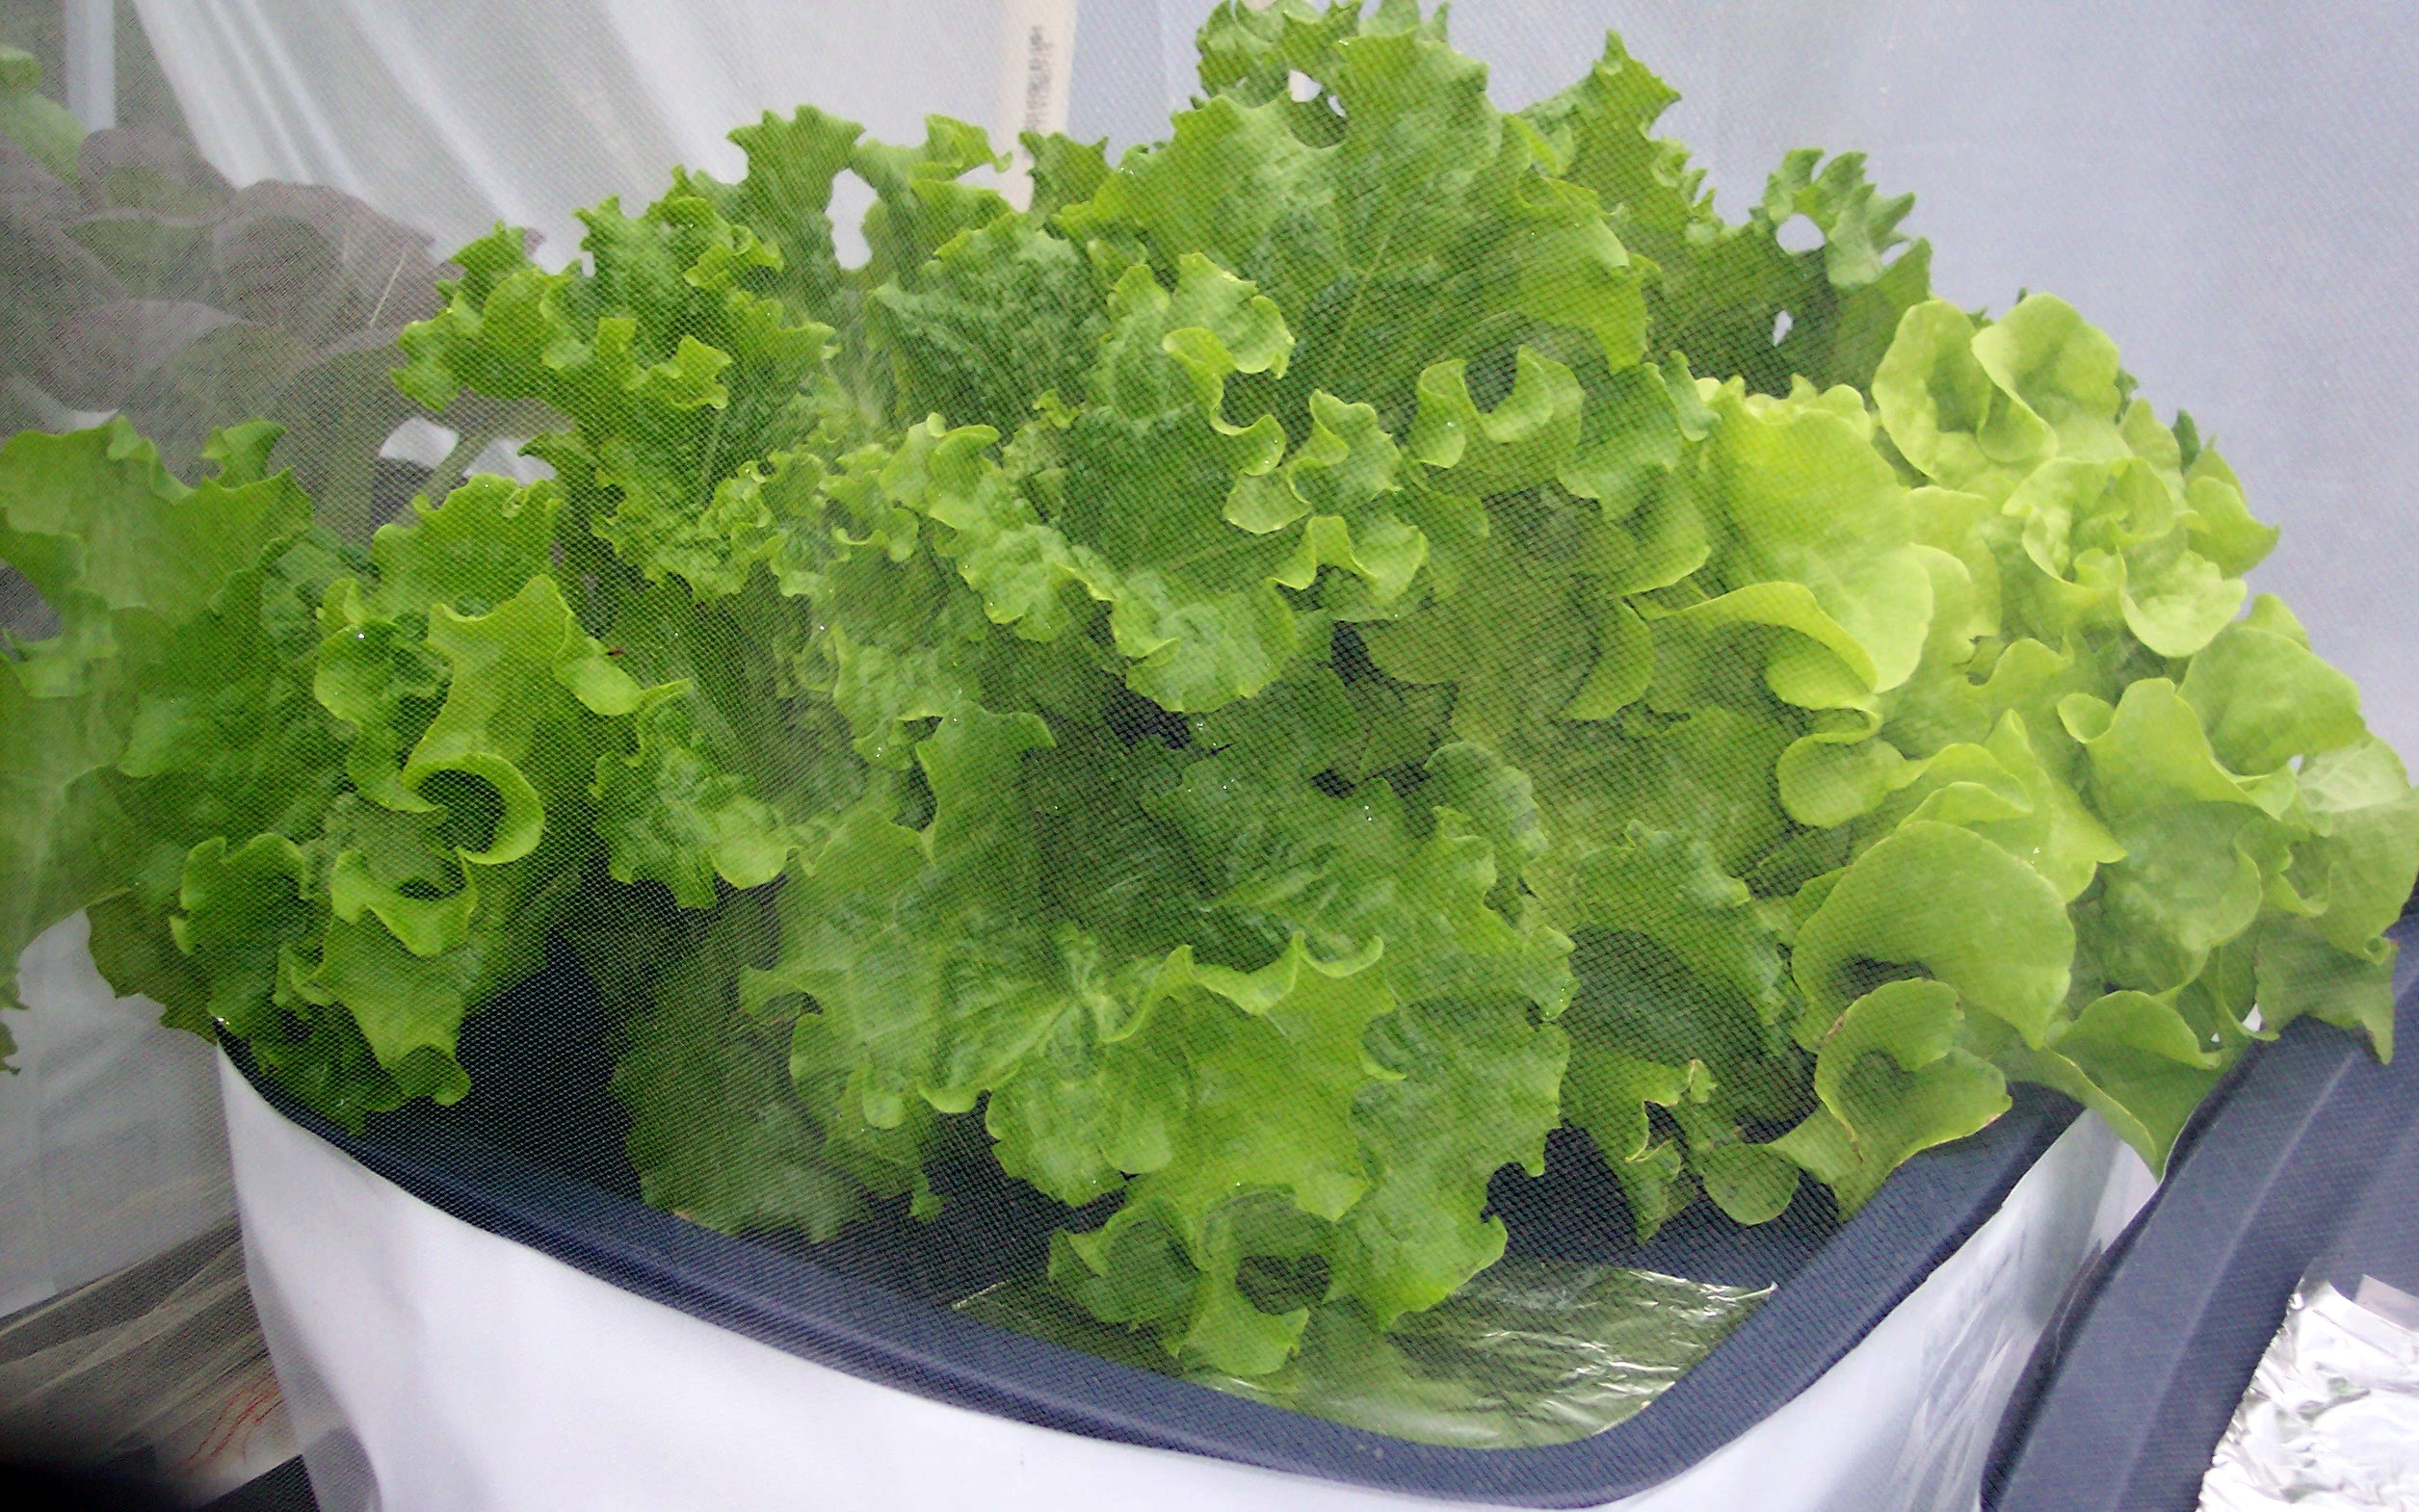 Vegetable gardening hydroponic videos photos posts livin small - Hydroponic container gardening ...